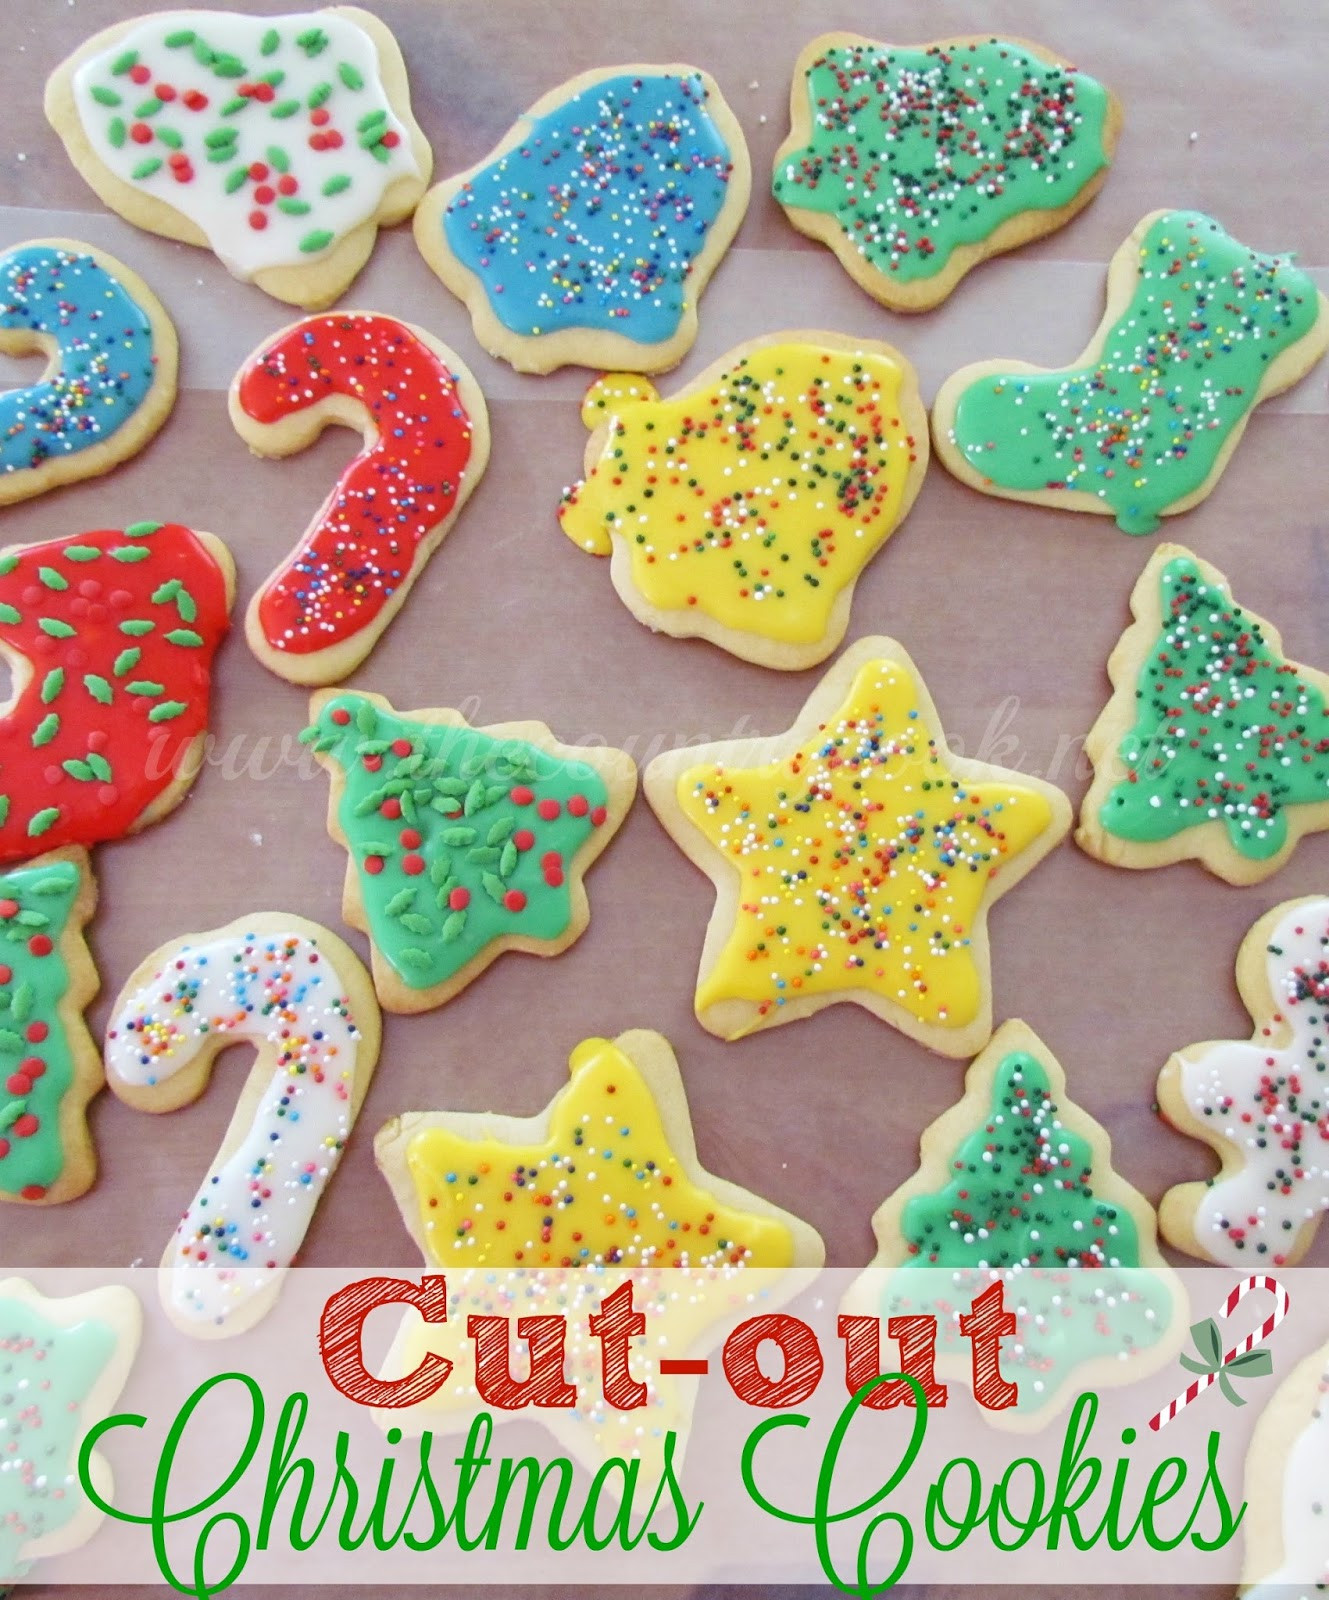 Christmas Cookies Sugar Cookies  Cut Out Sugar Cookies The Country Cook